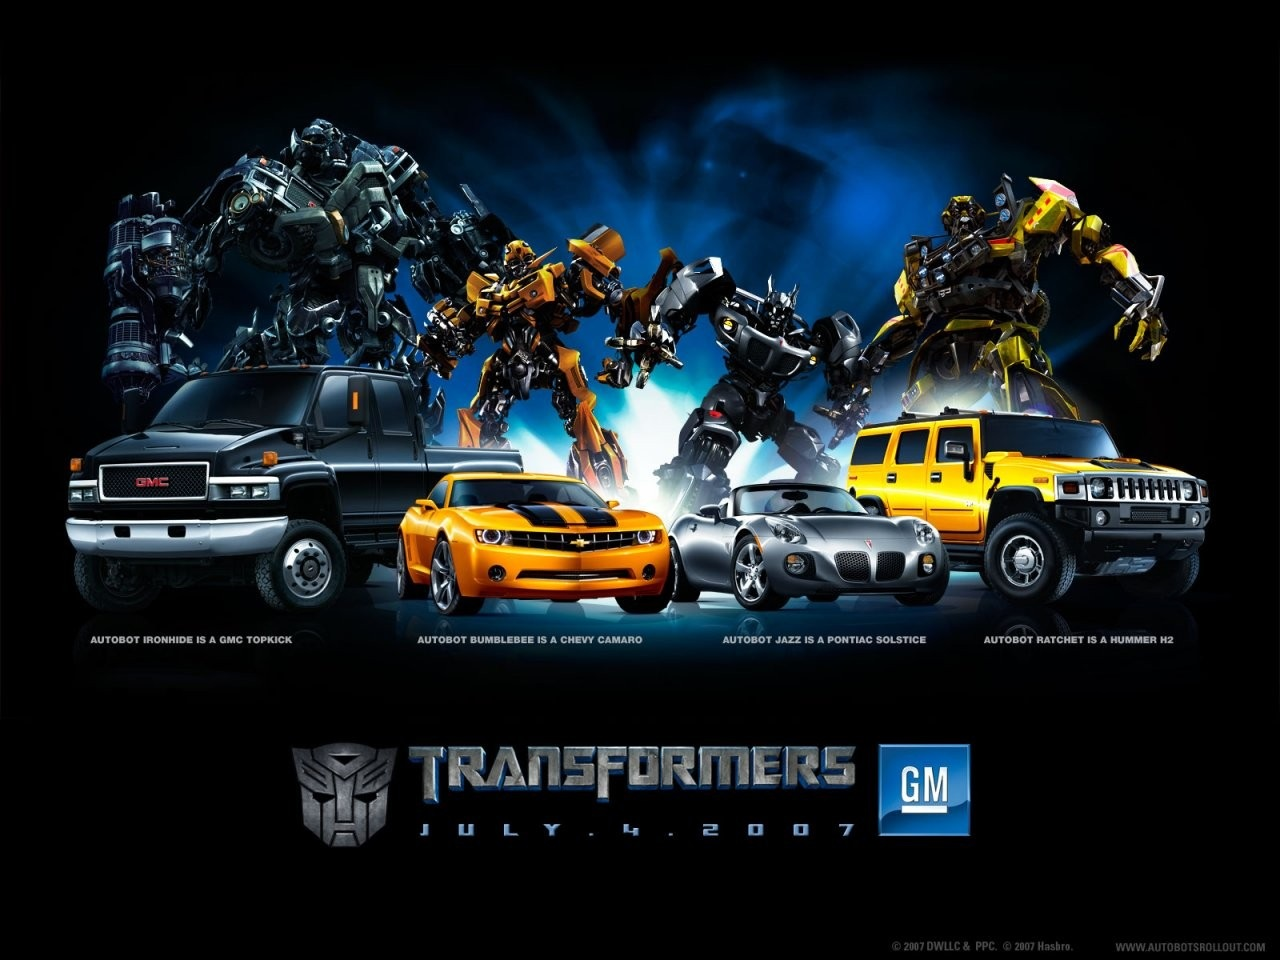 Transformers Ultimate Collection Screensavers Wallpapers Videos 1280x960